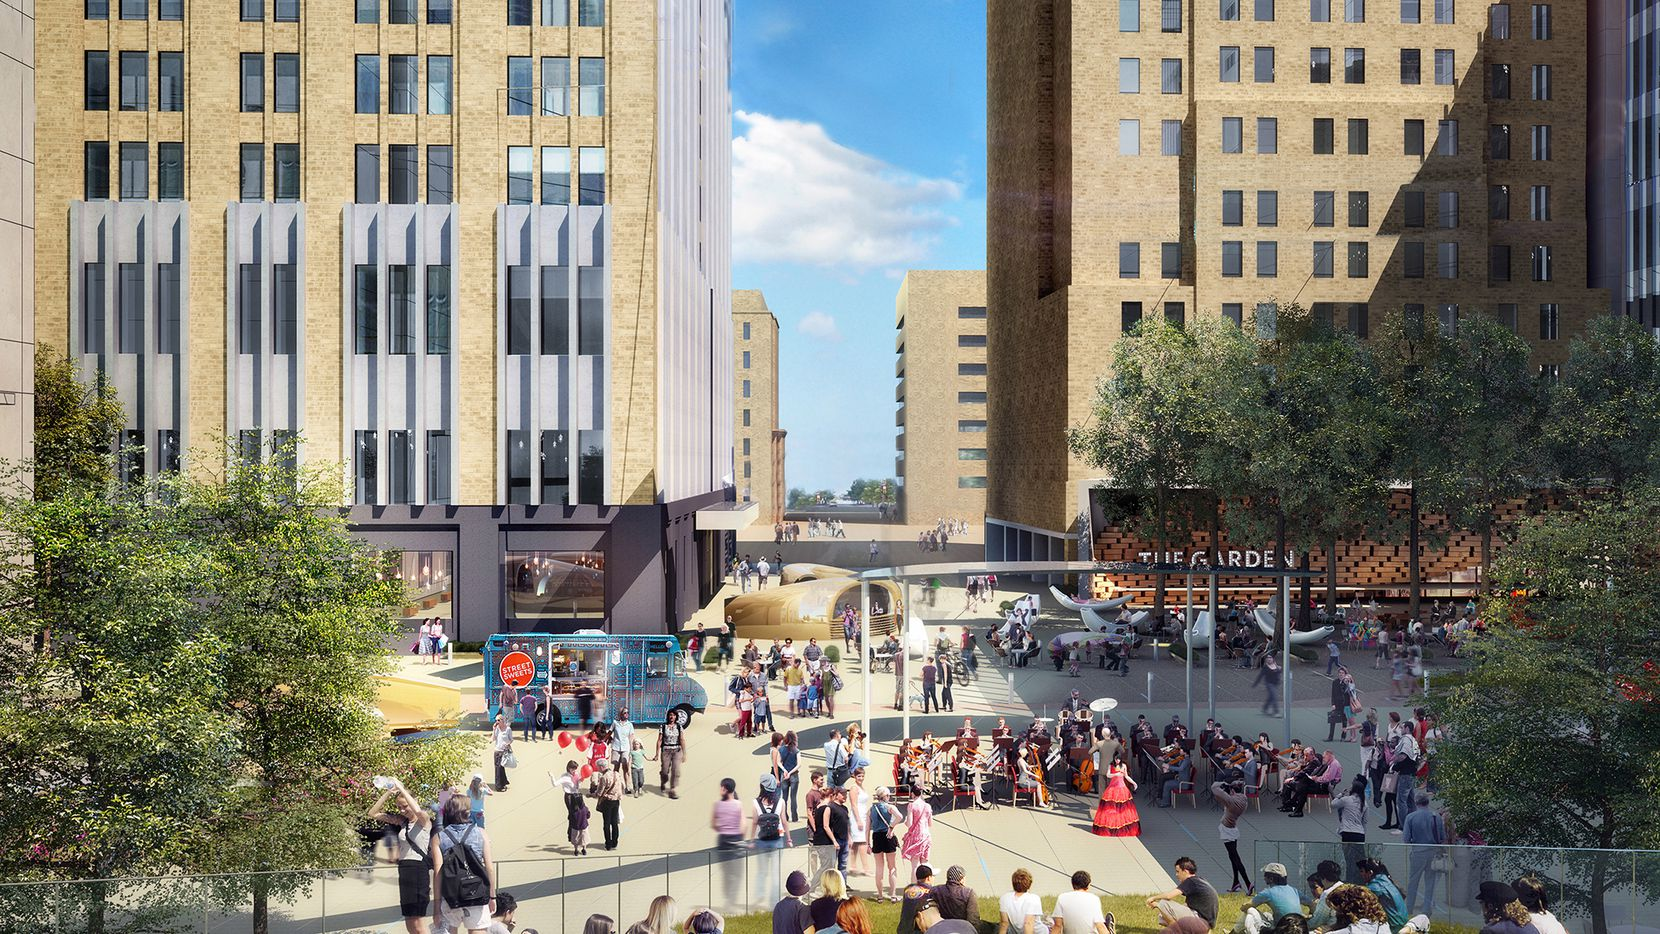 The plaza in front of AT&T's downtown buildings will be totally redone with new green space, restaurants, retail and art.